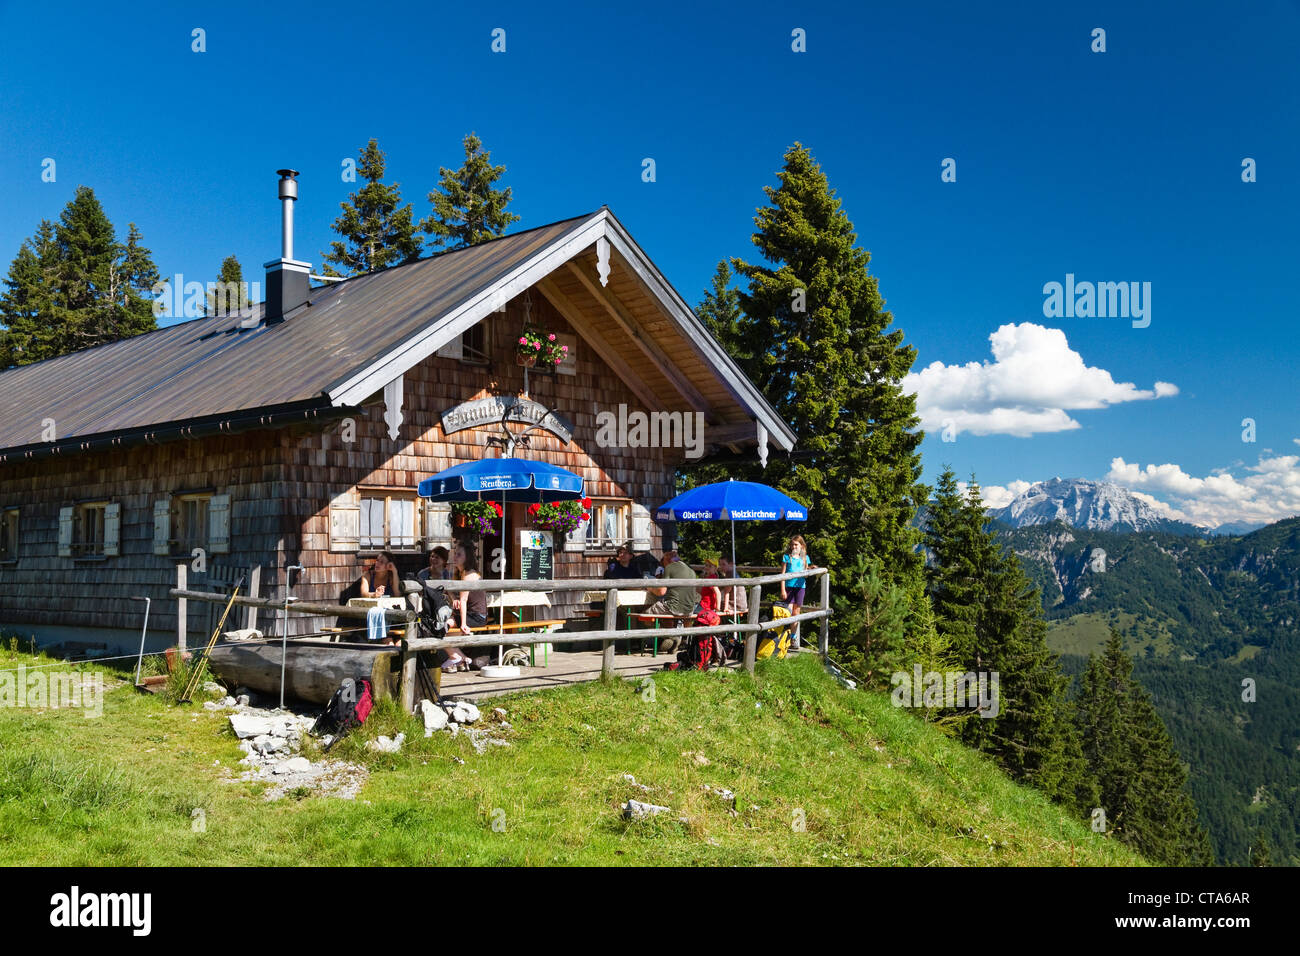 Alpine hut Sonnbergalm, Mangfall mountains, Bavarian Prealps, Upper Bavaria, Germany - Stock Image